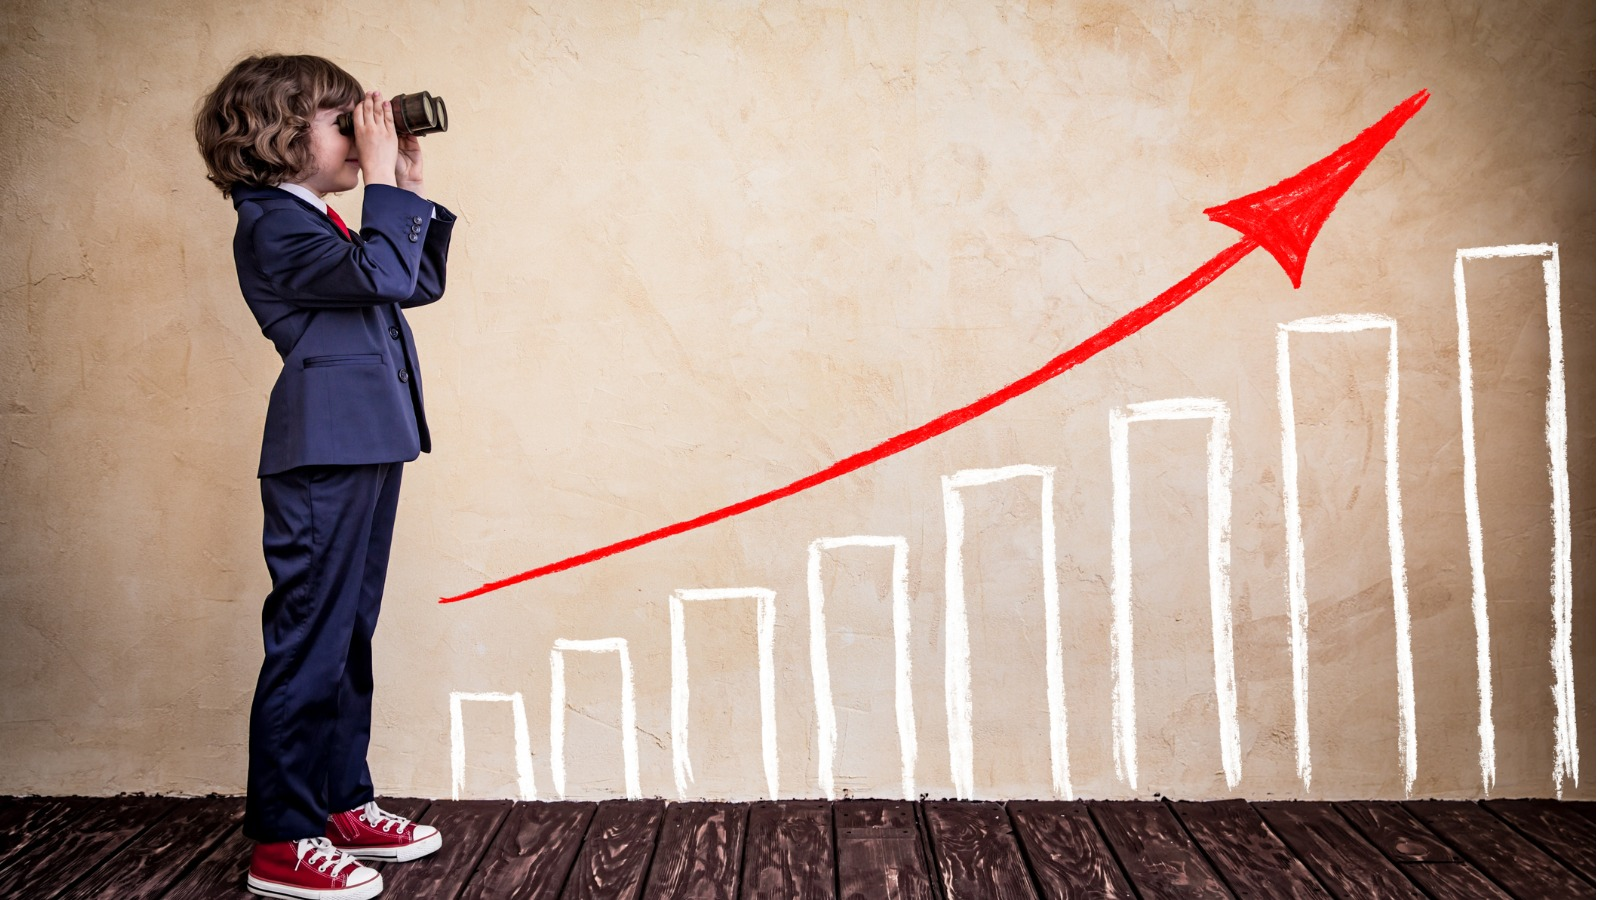 how to use growth chart